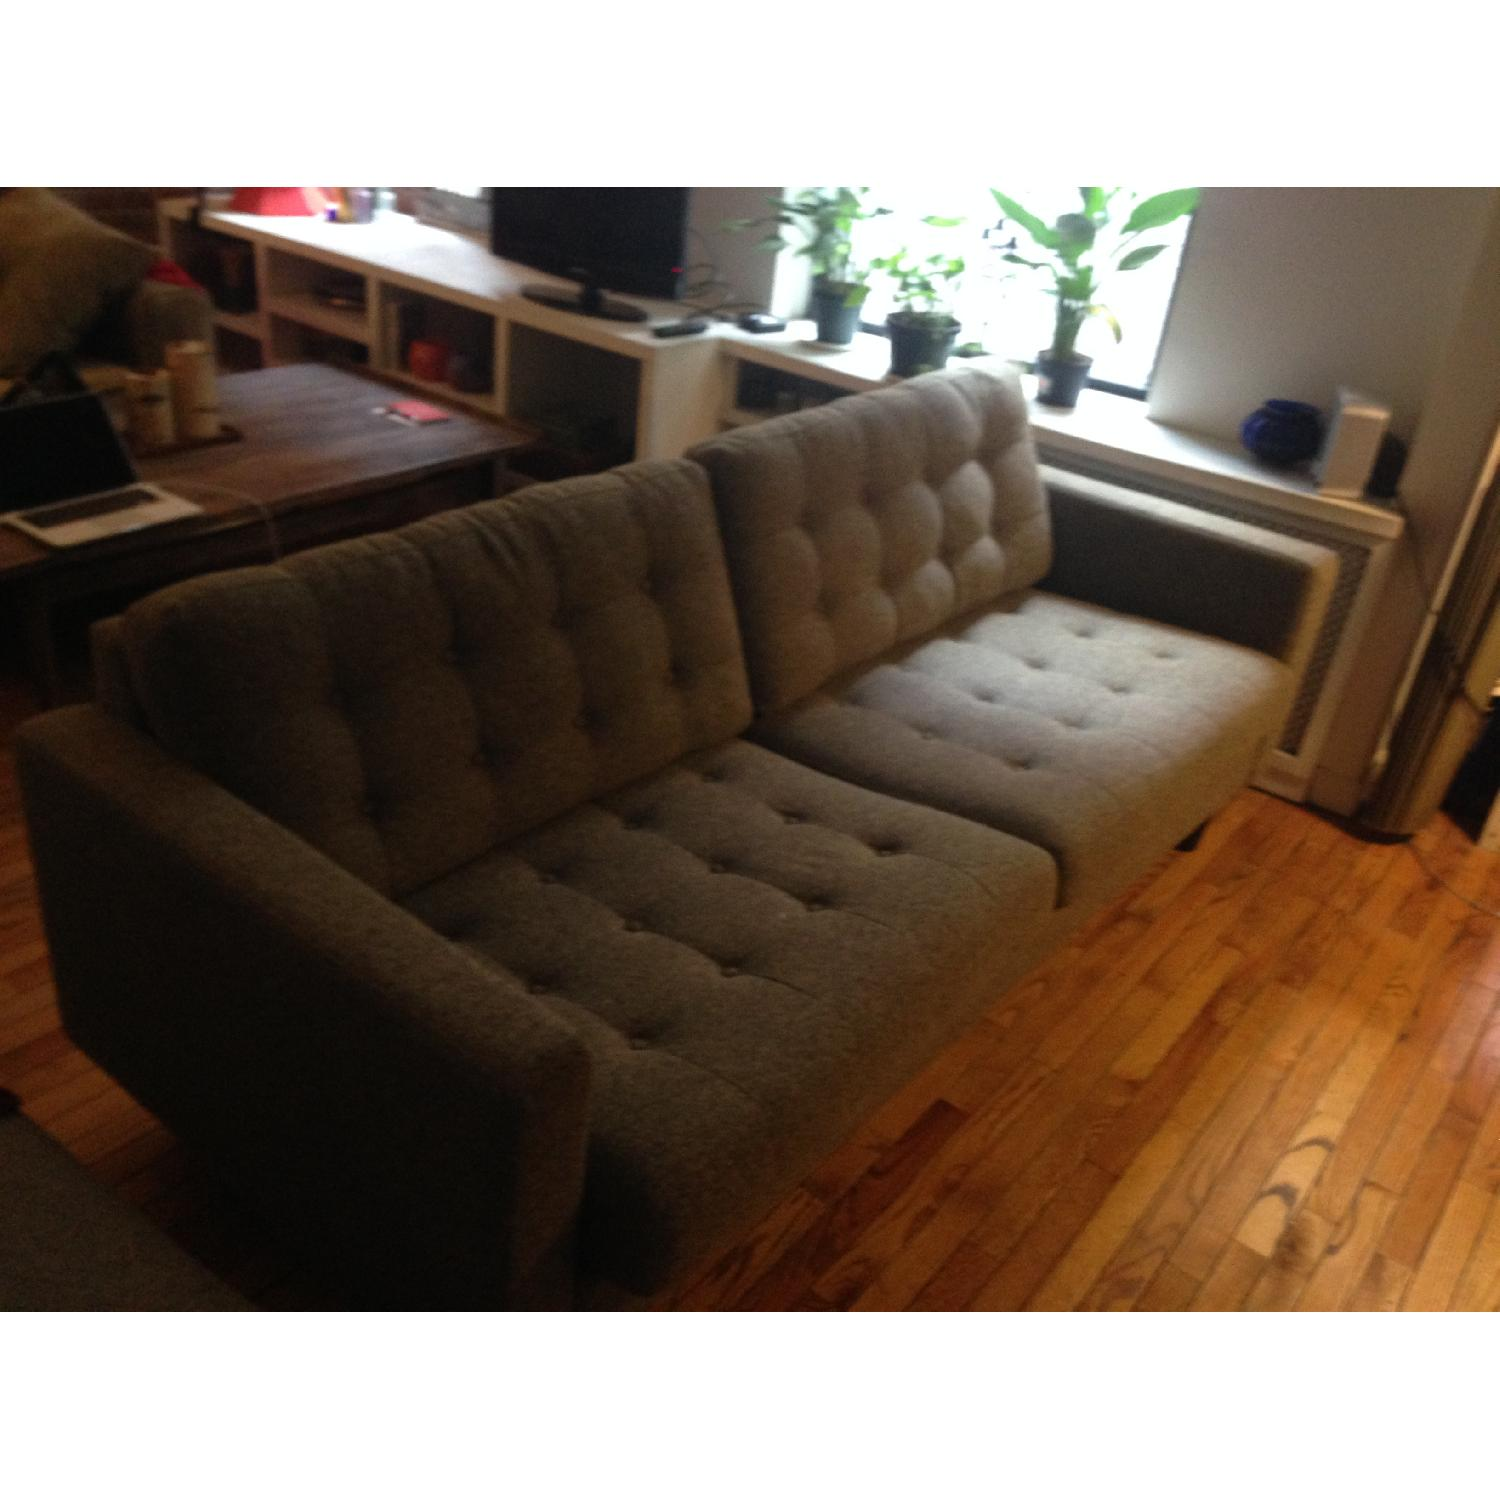 Modway Sofa in Oatmeal - image-1